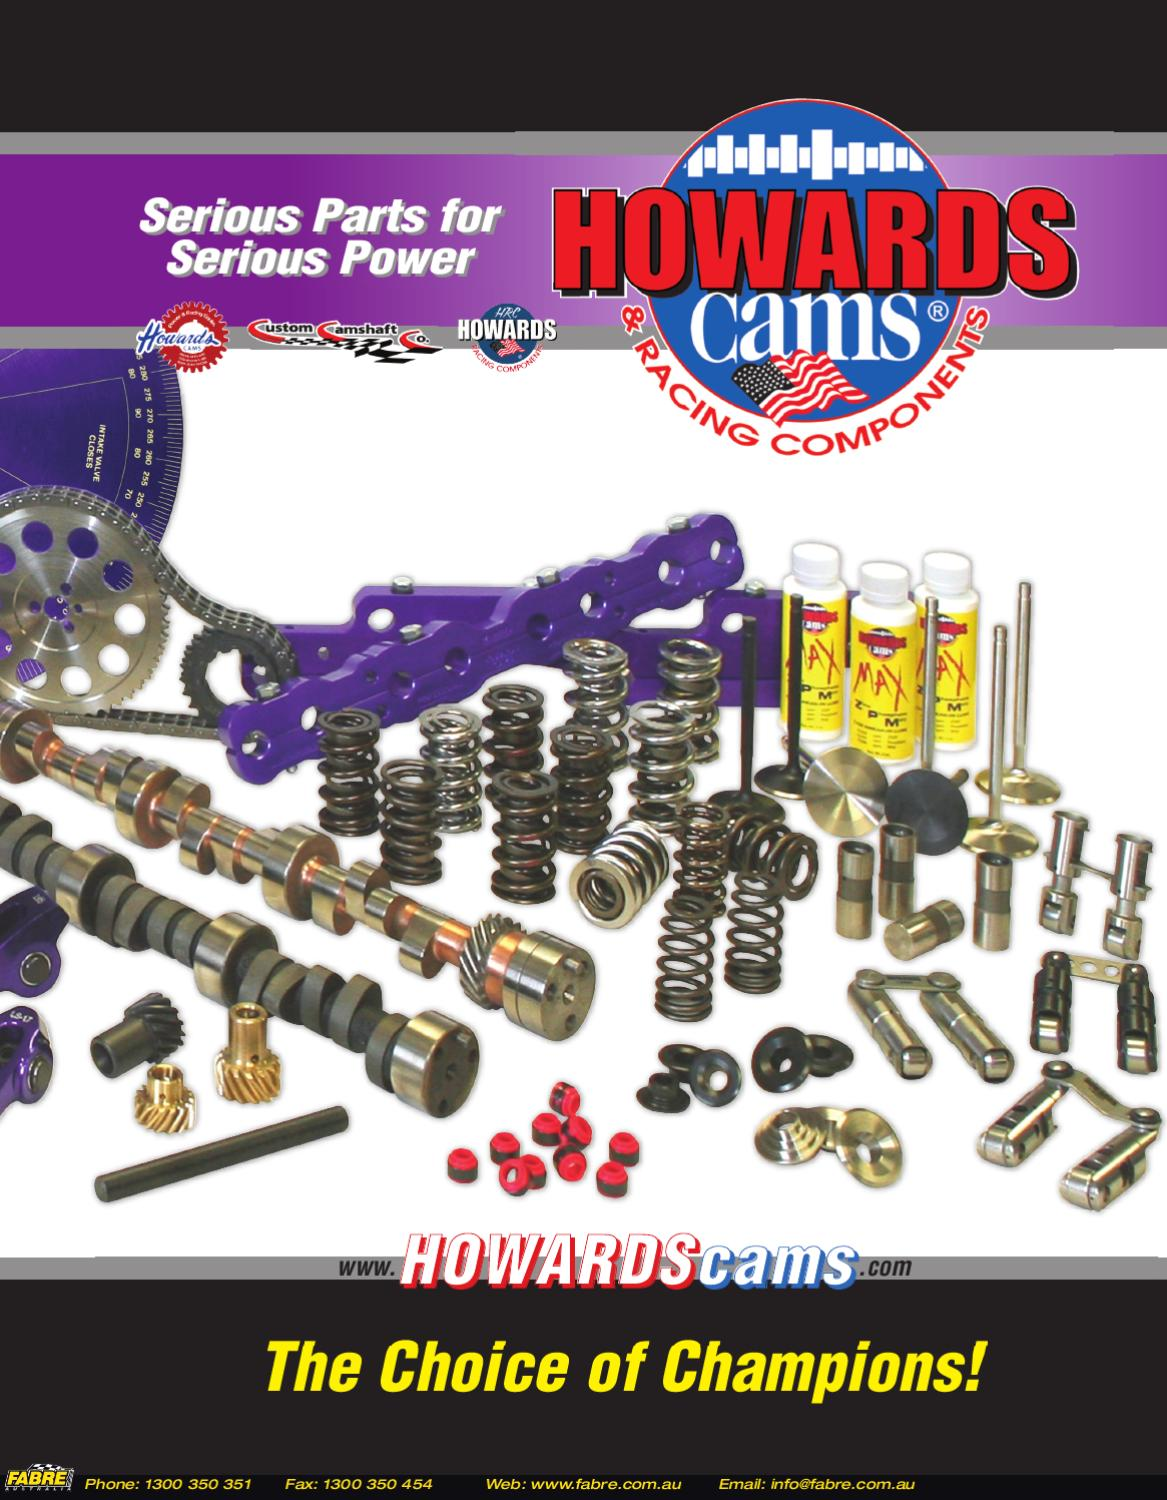 2012 Howards Cams Catalogue by Fabre Australia - issuu